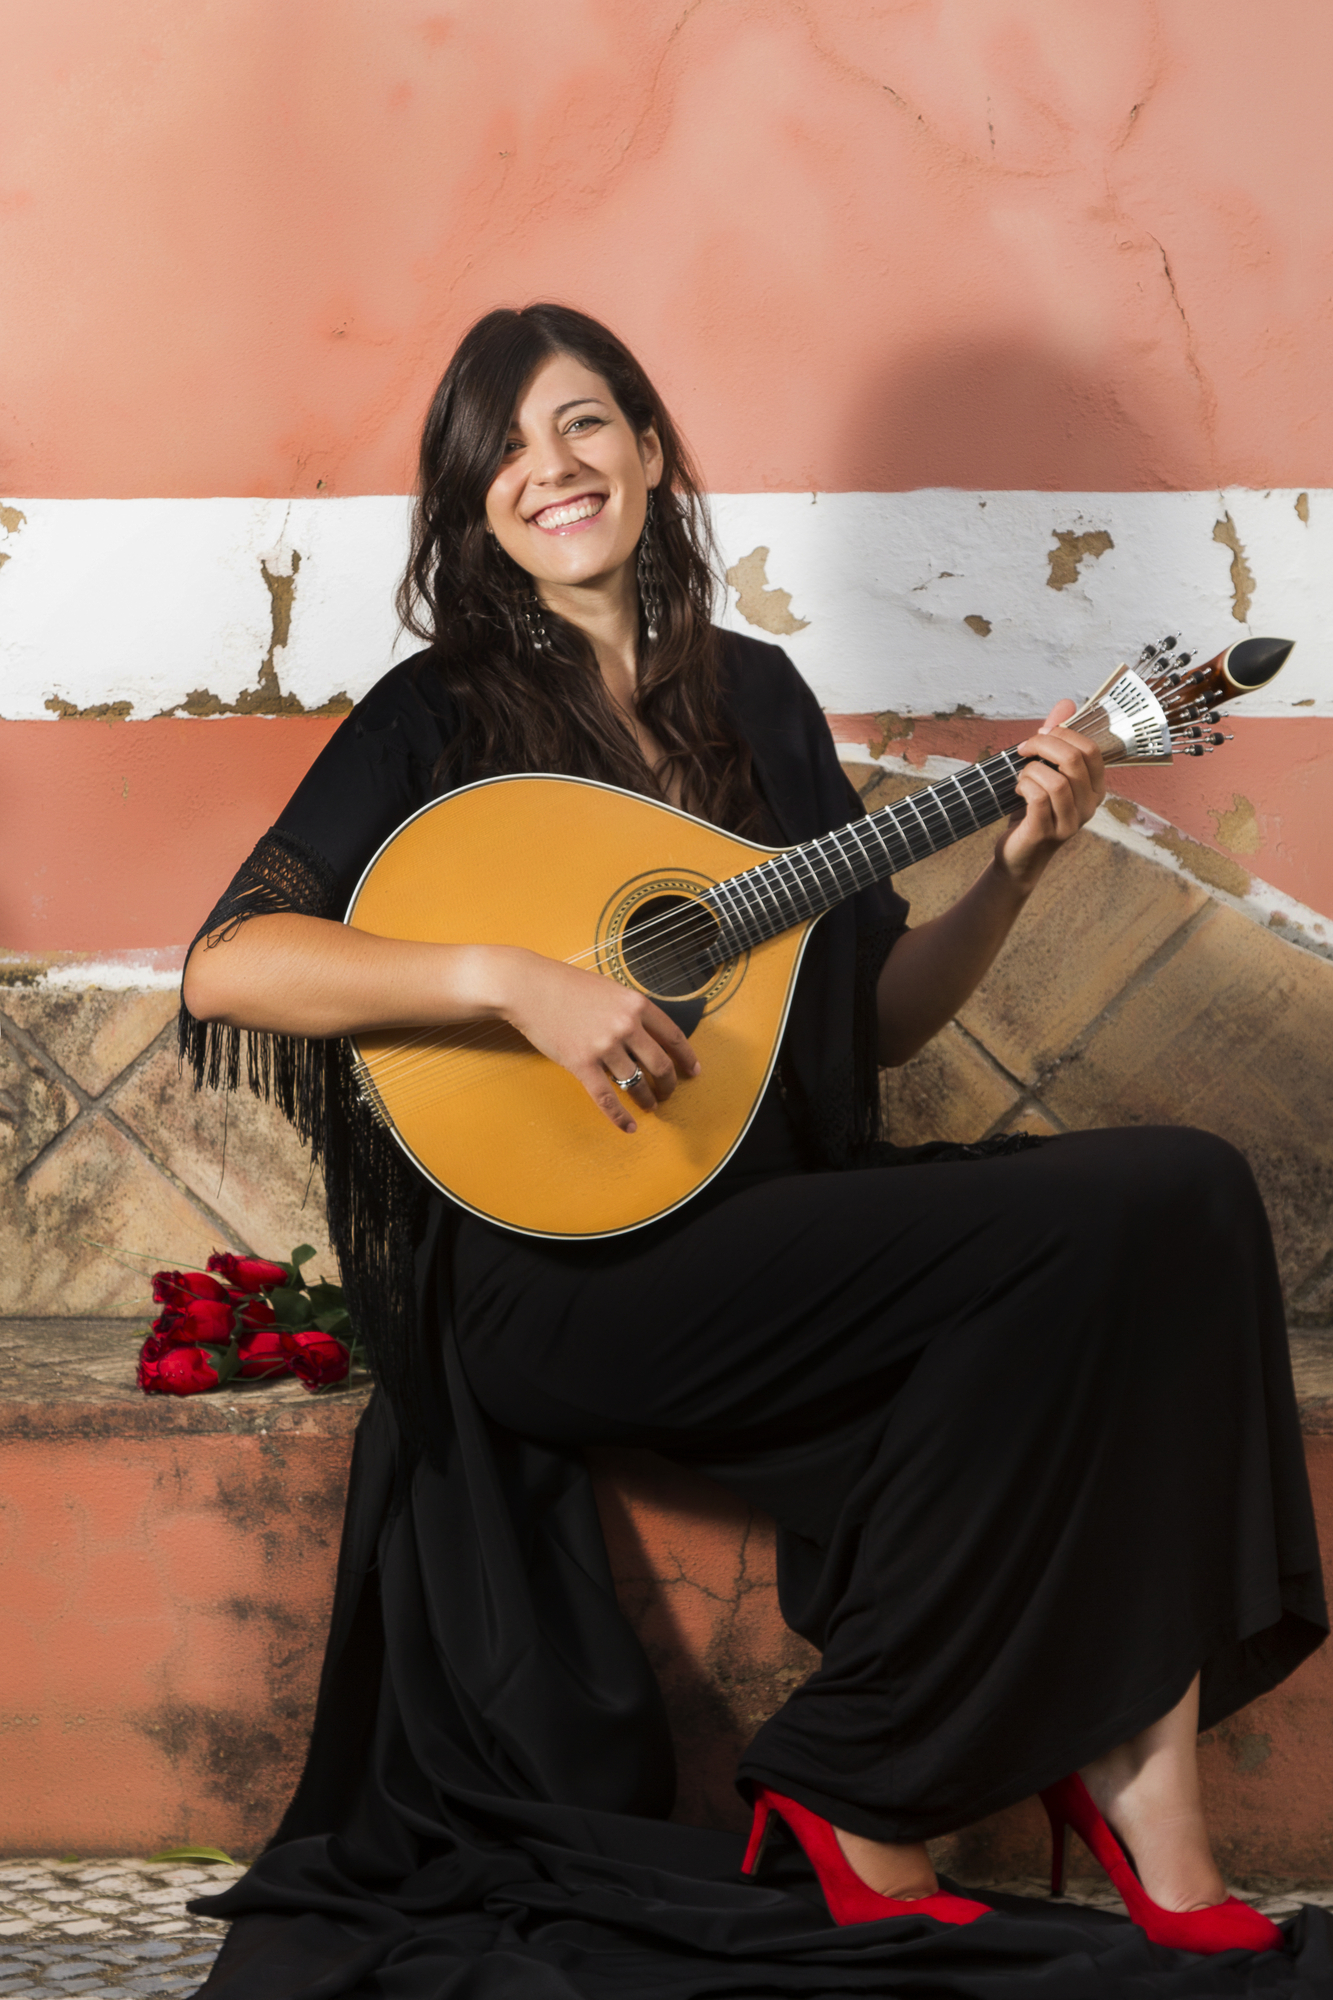 A beautiful singer and performer of traditional Portuguese Fado music.